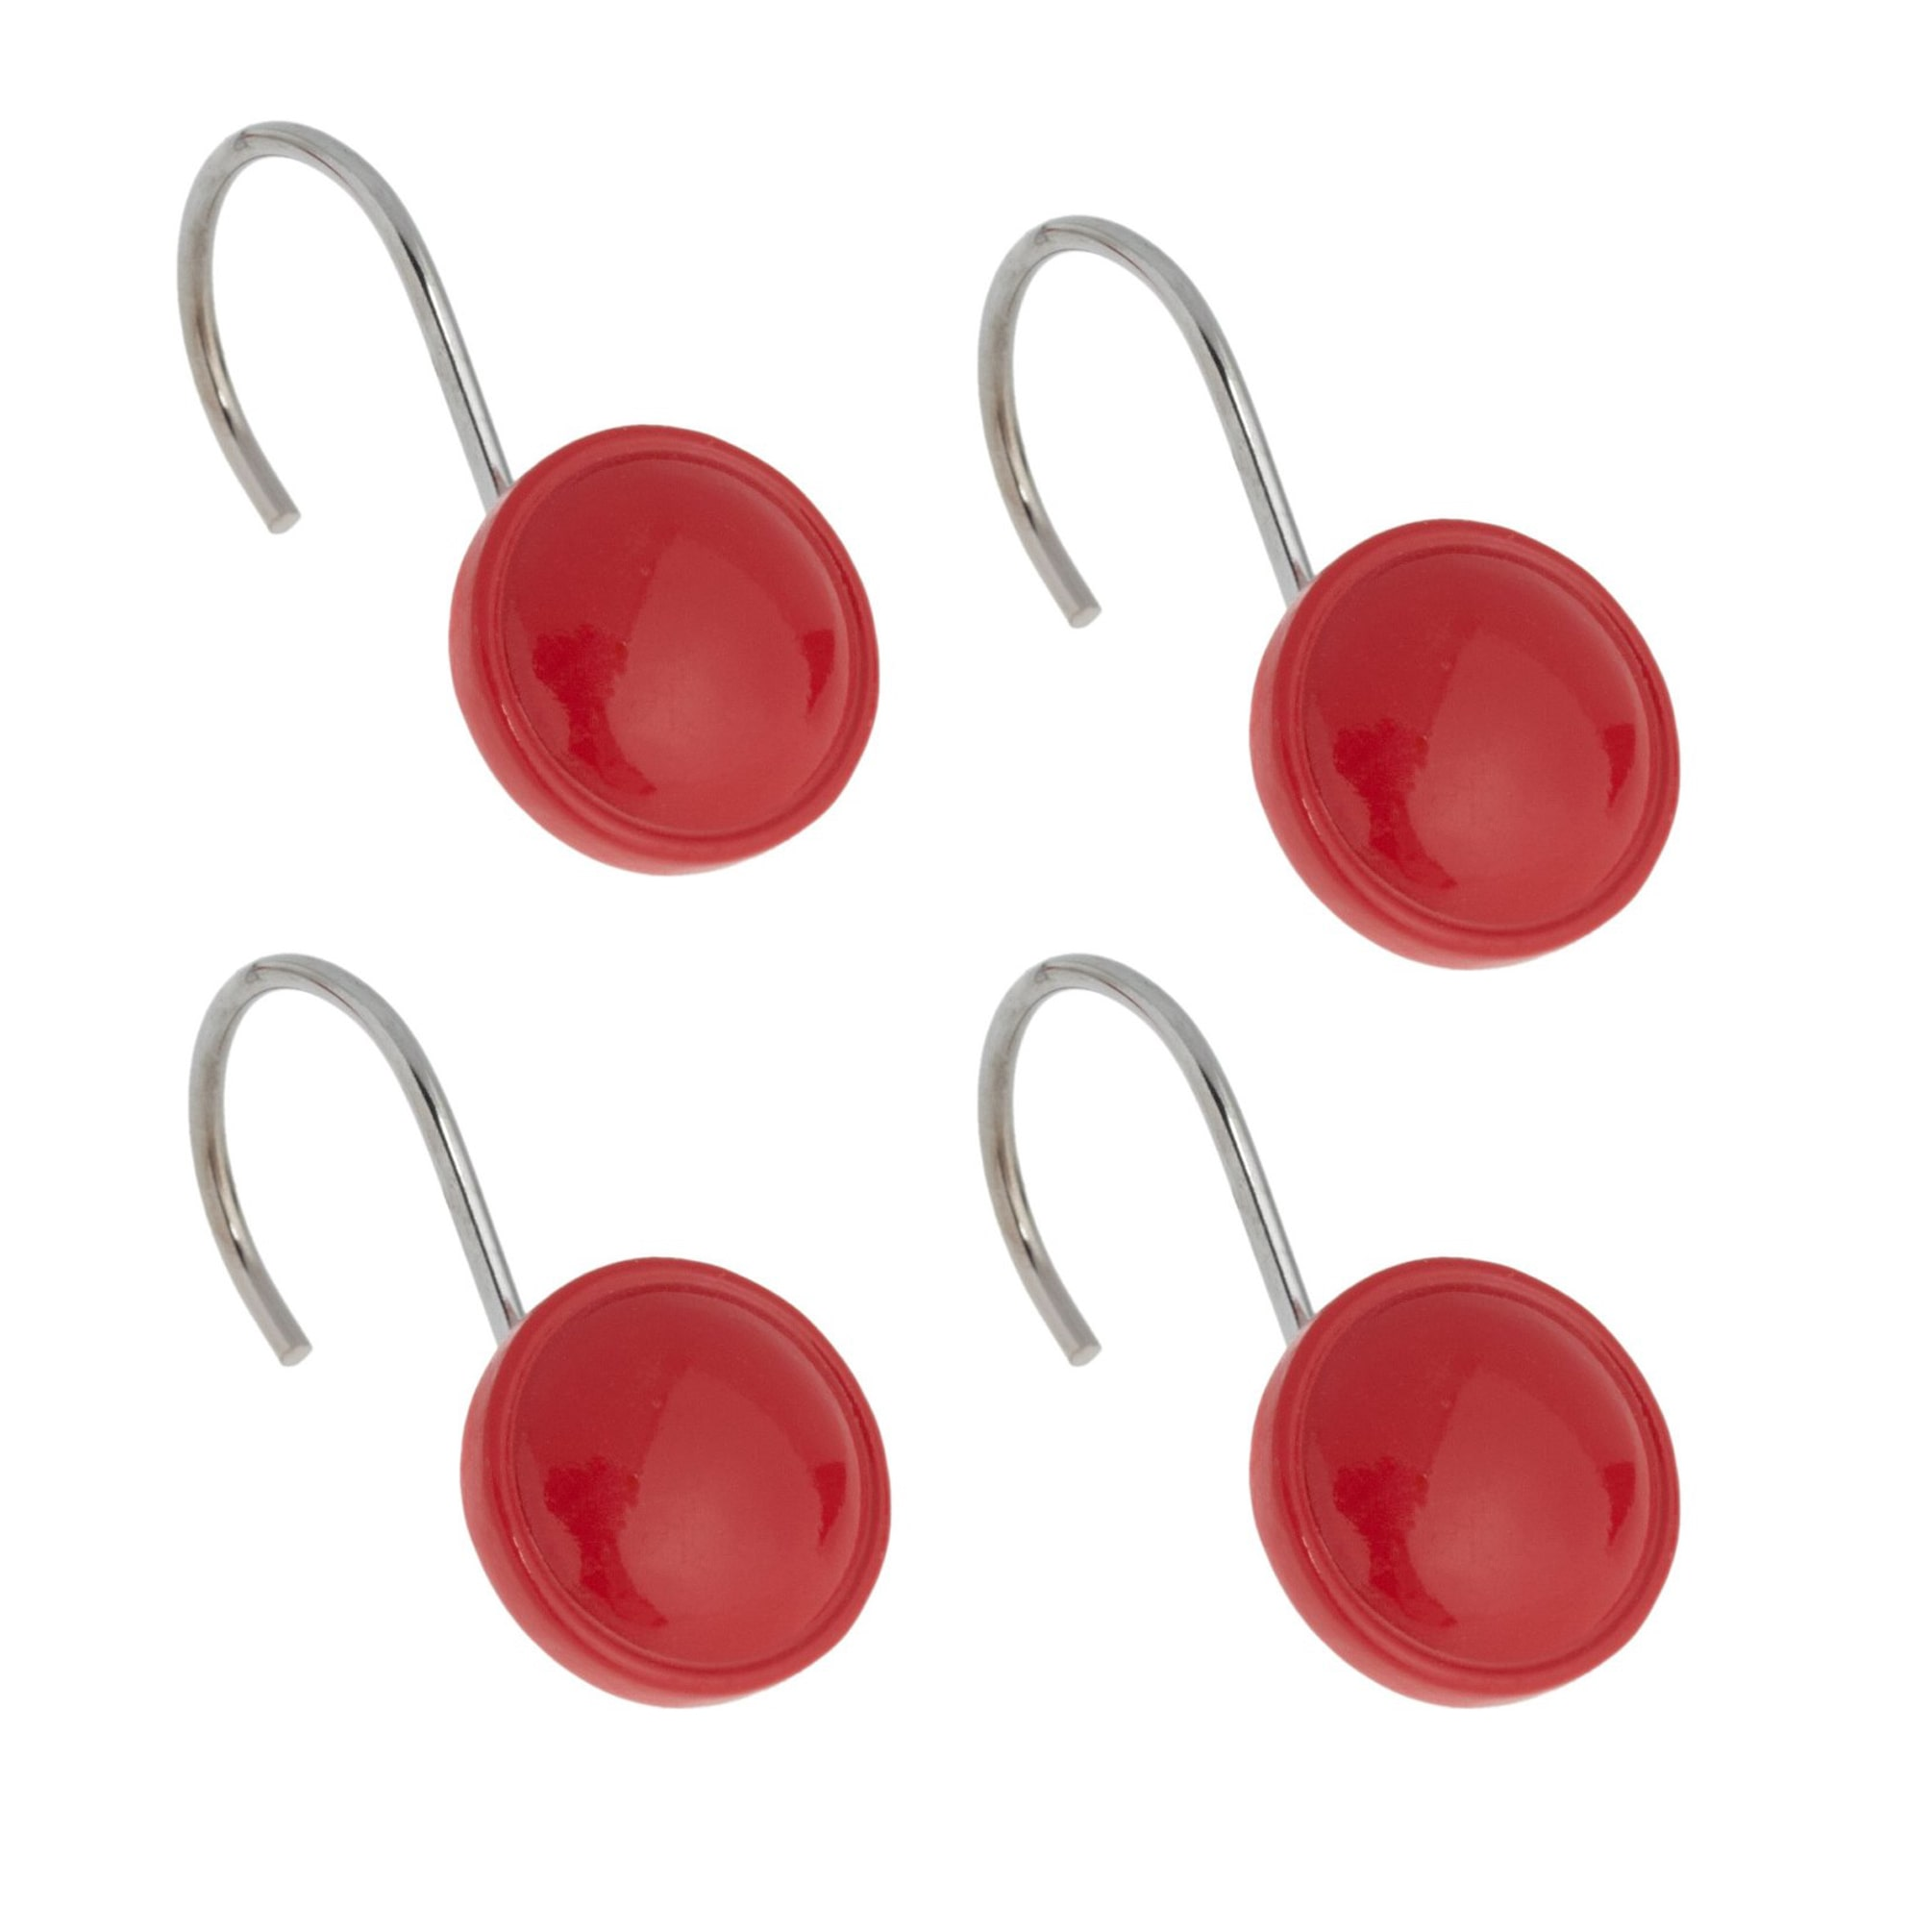 bed bath n more Hand Crafted Round Red Shower Curtain Hook Set (Pack of 12)